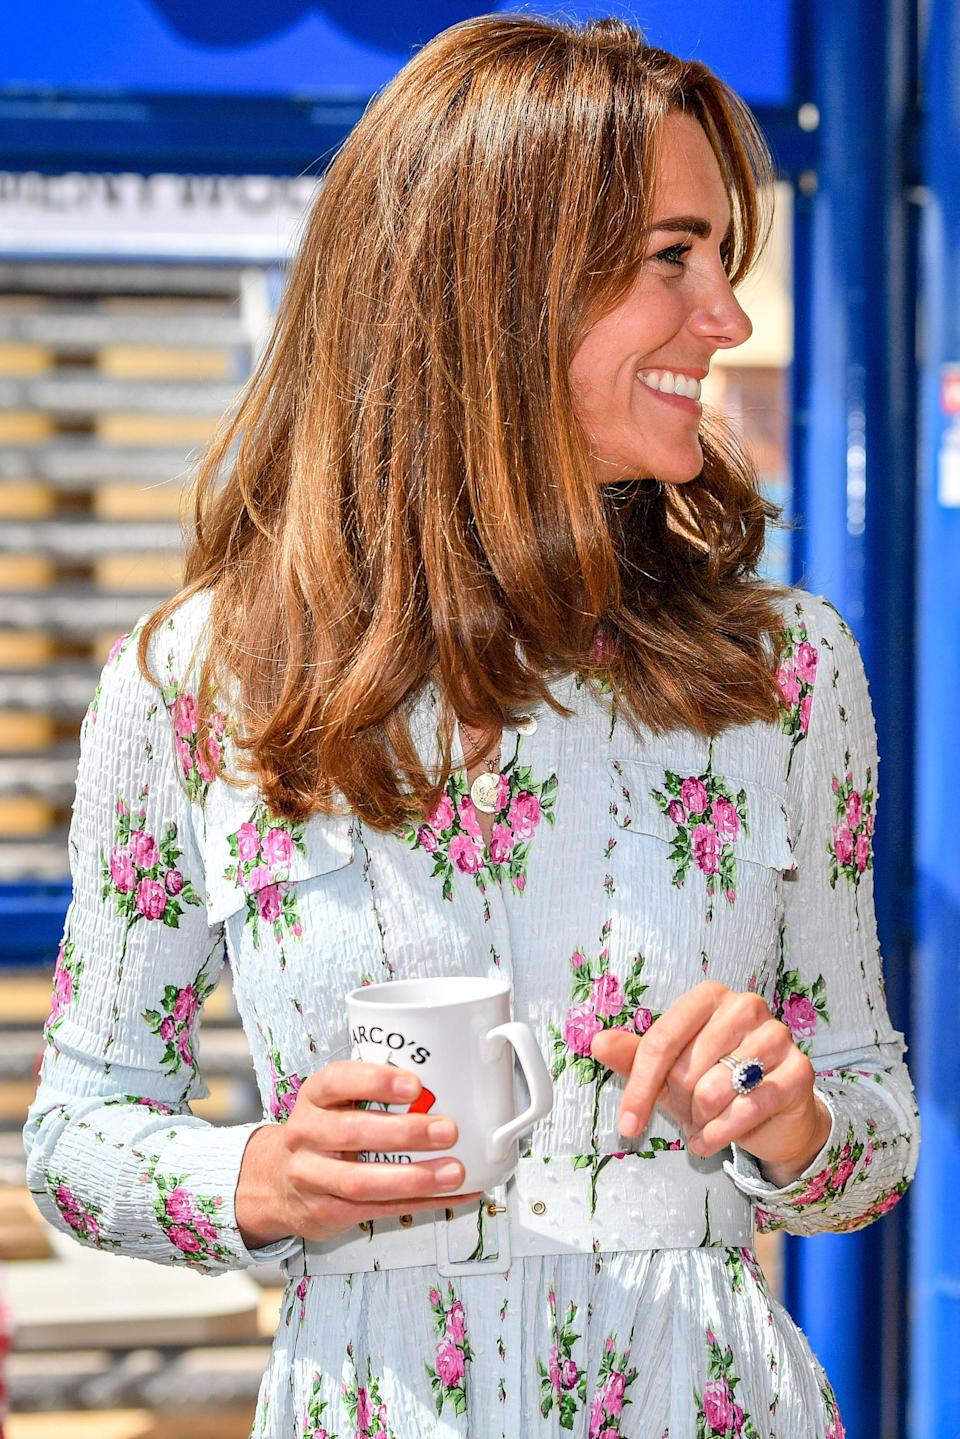 "We don't know yet what magical rain- and humidity-defying hair products Middleton uses for <a href=""https://www.glamour.com/story/kate-middleton-post-quarantine-haircut-color?mbid=synd_yahoo_rss"" rel=""nofollow noopener"" target=""_blank"" data-ylk=""slk:her signature bounce"" class=""link rapid-noclick-resp"">her signature bounce</a>, but apparently, Kiehl's Since 1851 has <a href=""https://www.huffpost.com/entry/how-to-get-kate-middletons-hair-products-revealed_n_5a733e20e4b06ee97af06891"" data-ylk=""slk:something to do with it"" class=""link rapid-noclick-resp"">something to do with it</a>. While the trusted brand isn't offering deals on its haircare this time around, there is a solid selection of skincare products currently on markdown."